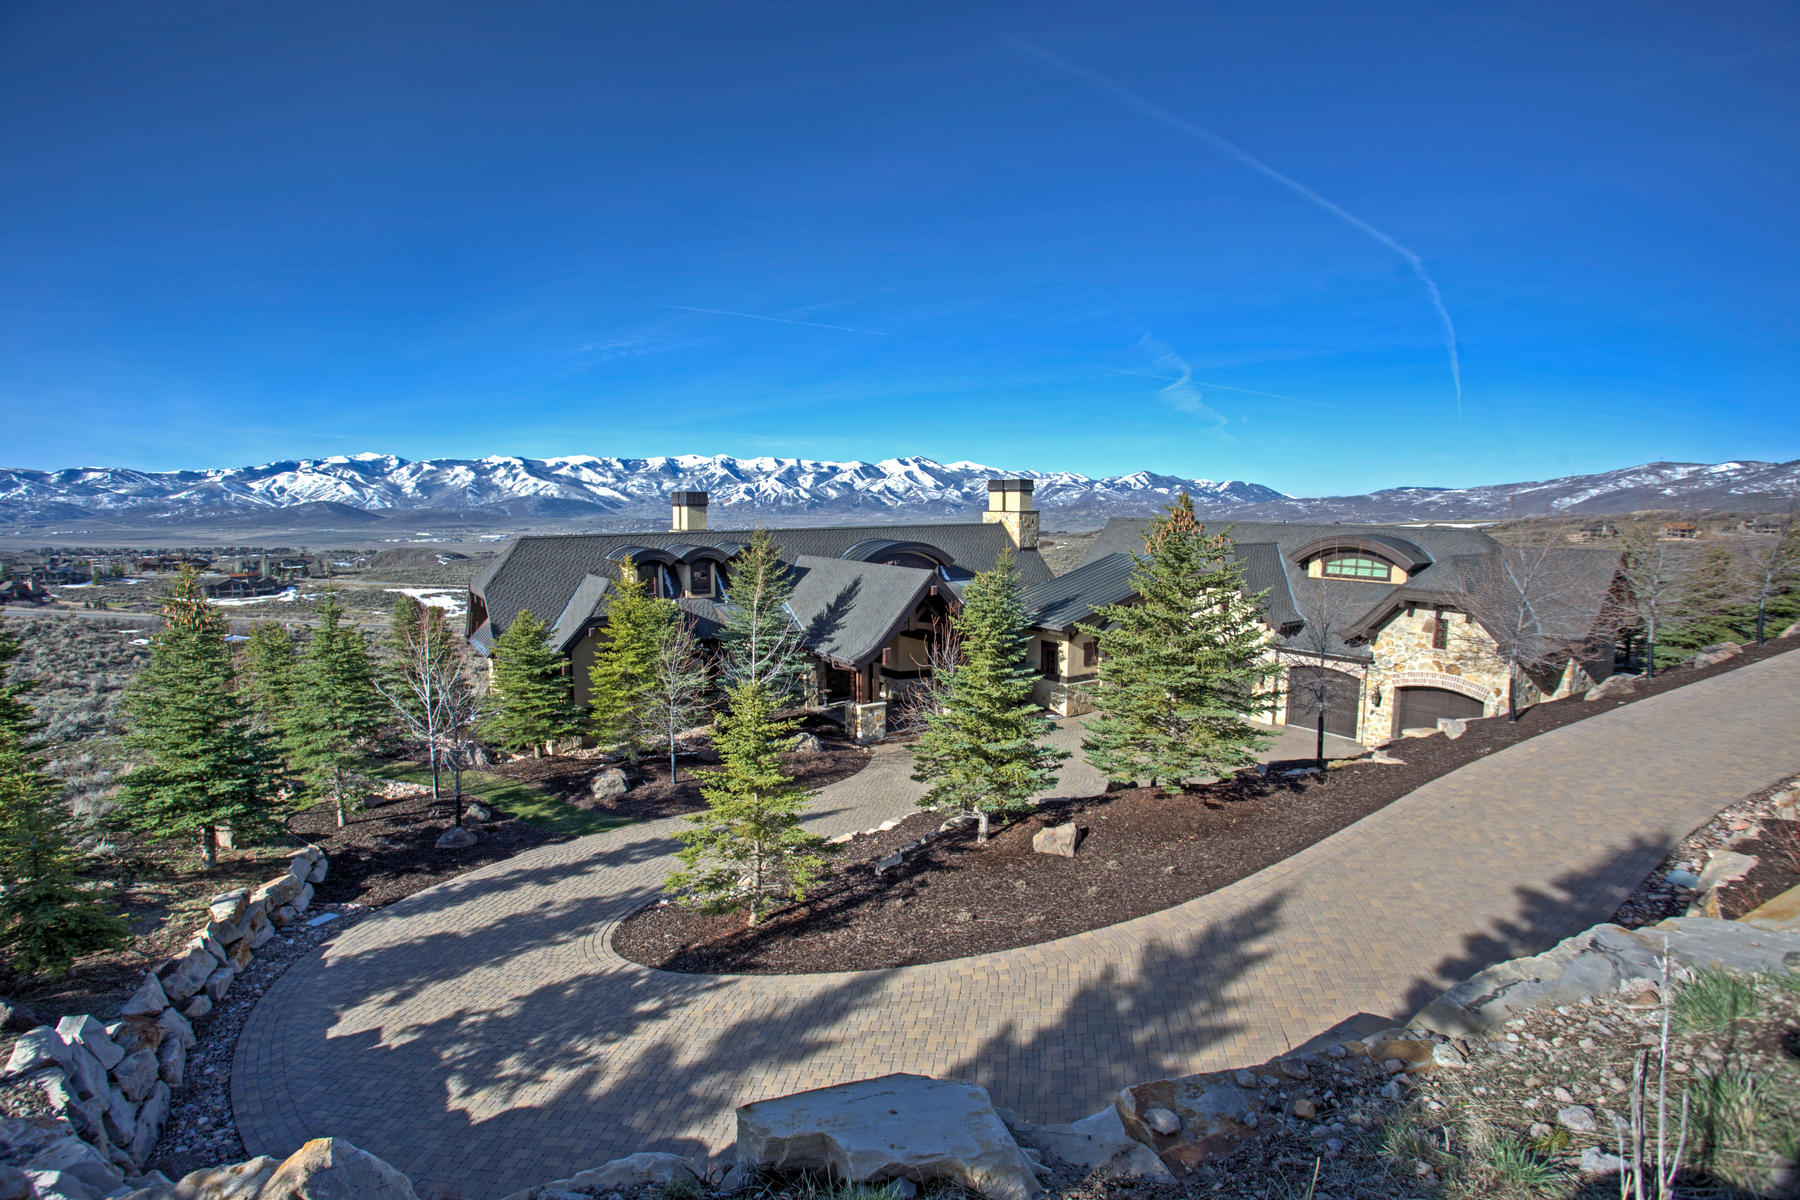 Moradia para Venda às Superior Construction Quality, Ideal Floorplan and Forever Ski Hill Views 3724 Central Pacific Trl Park City, Utah, 84098 Estados Unidos